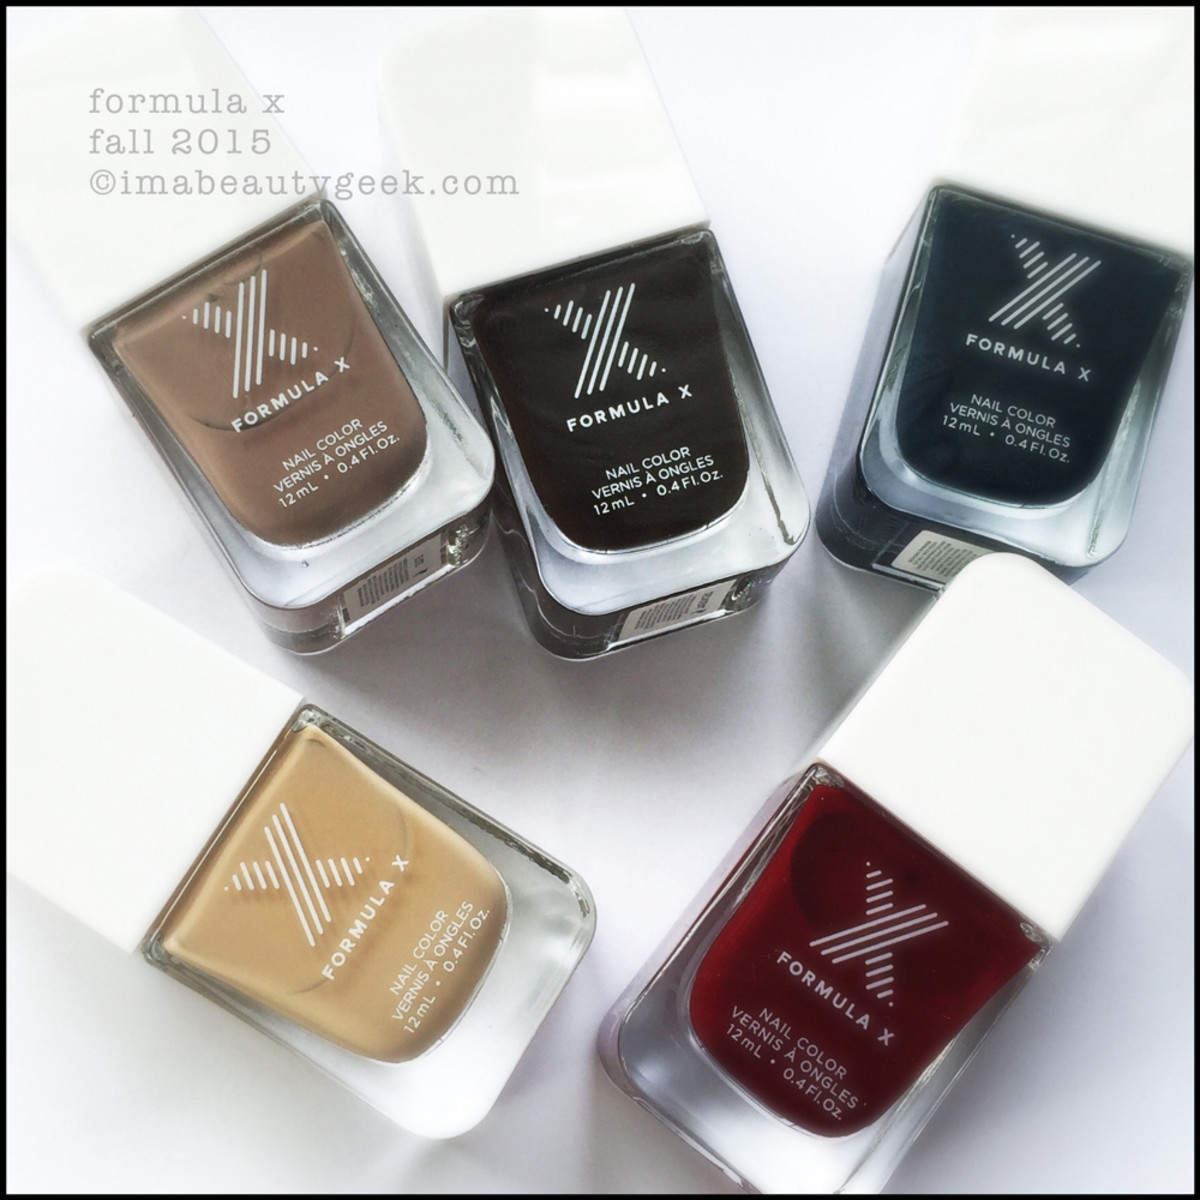 Formula X Nail Color Fall 2015 Sephora